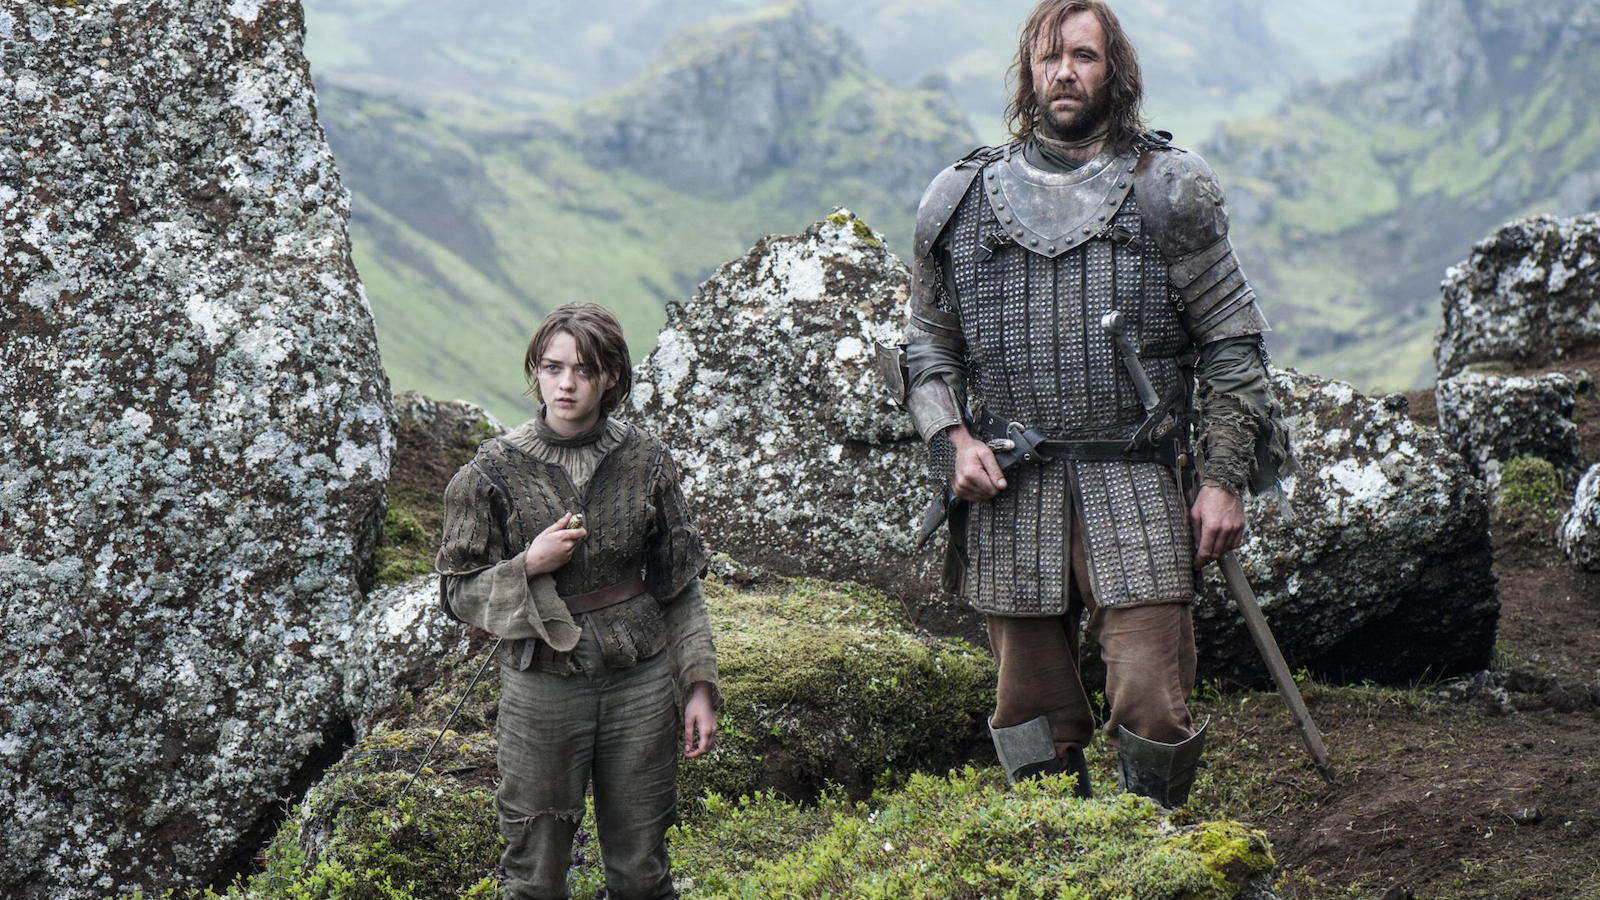 Game of Thrones Season 4 Finale Preview The Children - Arya and the Hound www.scifiempire.net